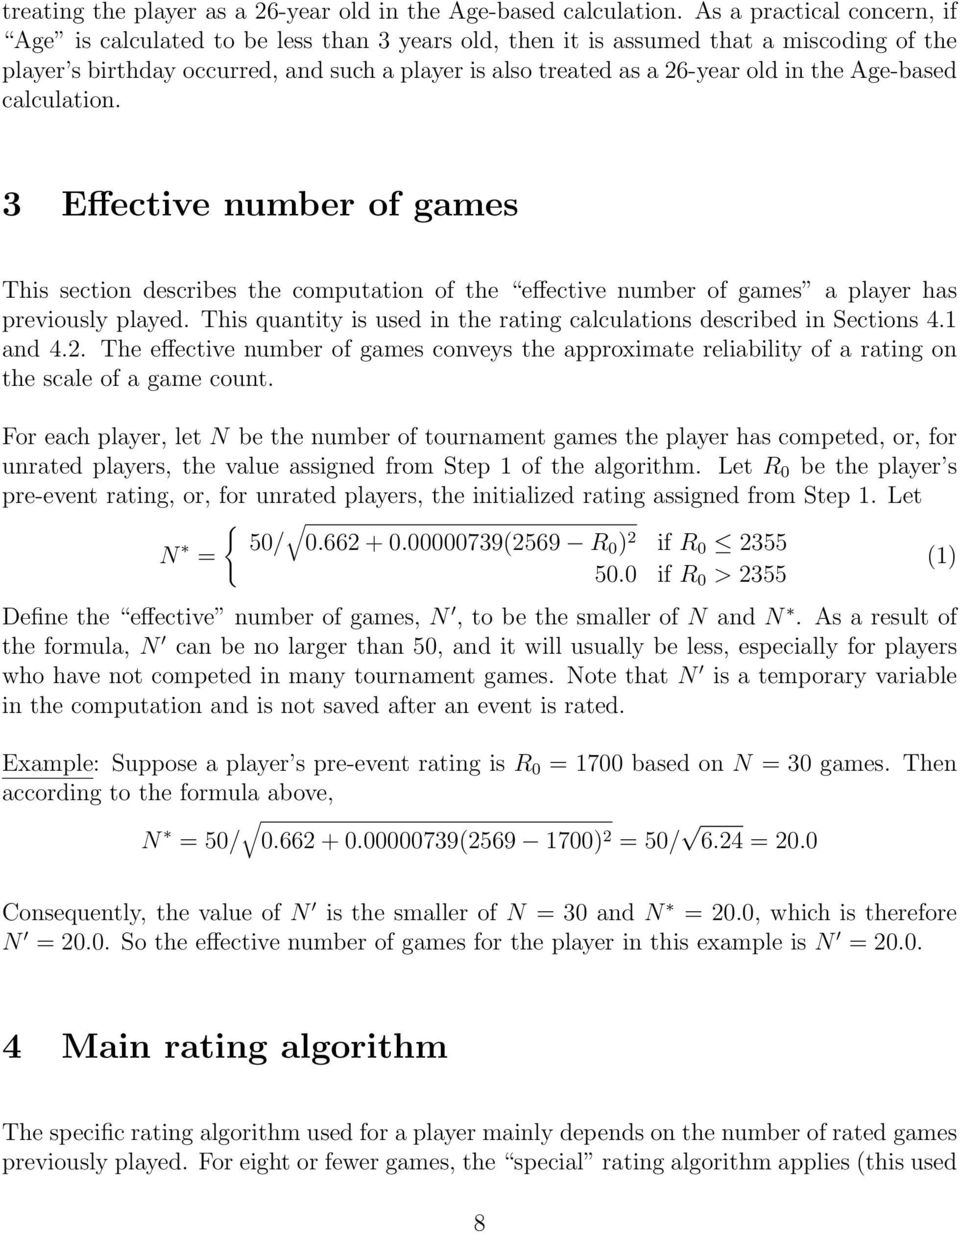 the Age-based calculation. 3 Effective number of games This section describes the computation of the effective number of games a player has previously played.